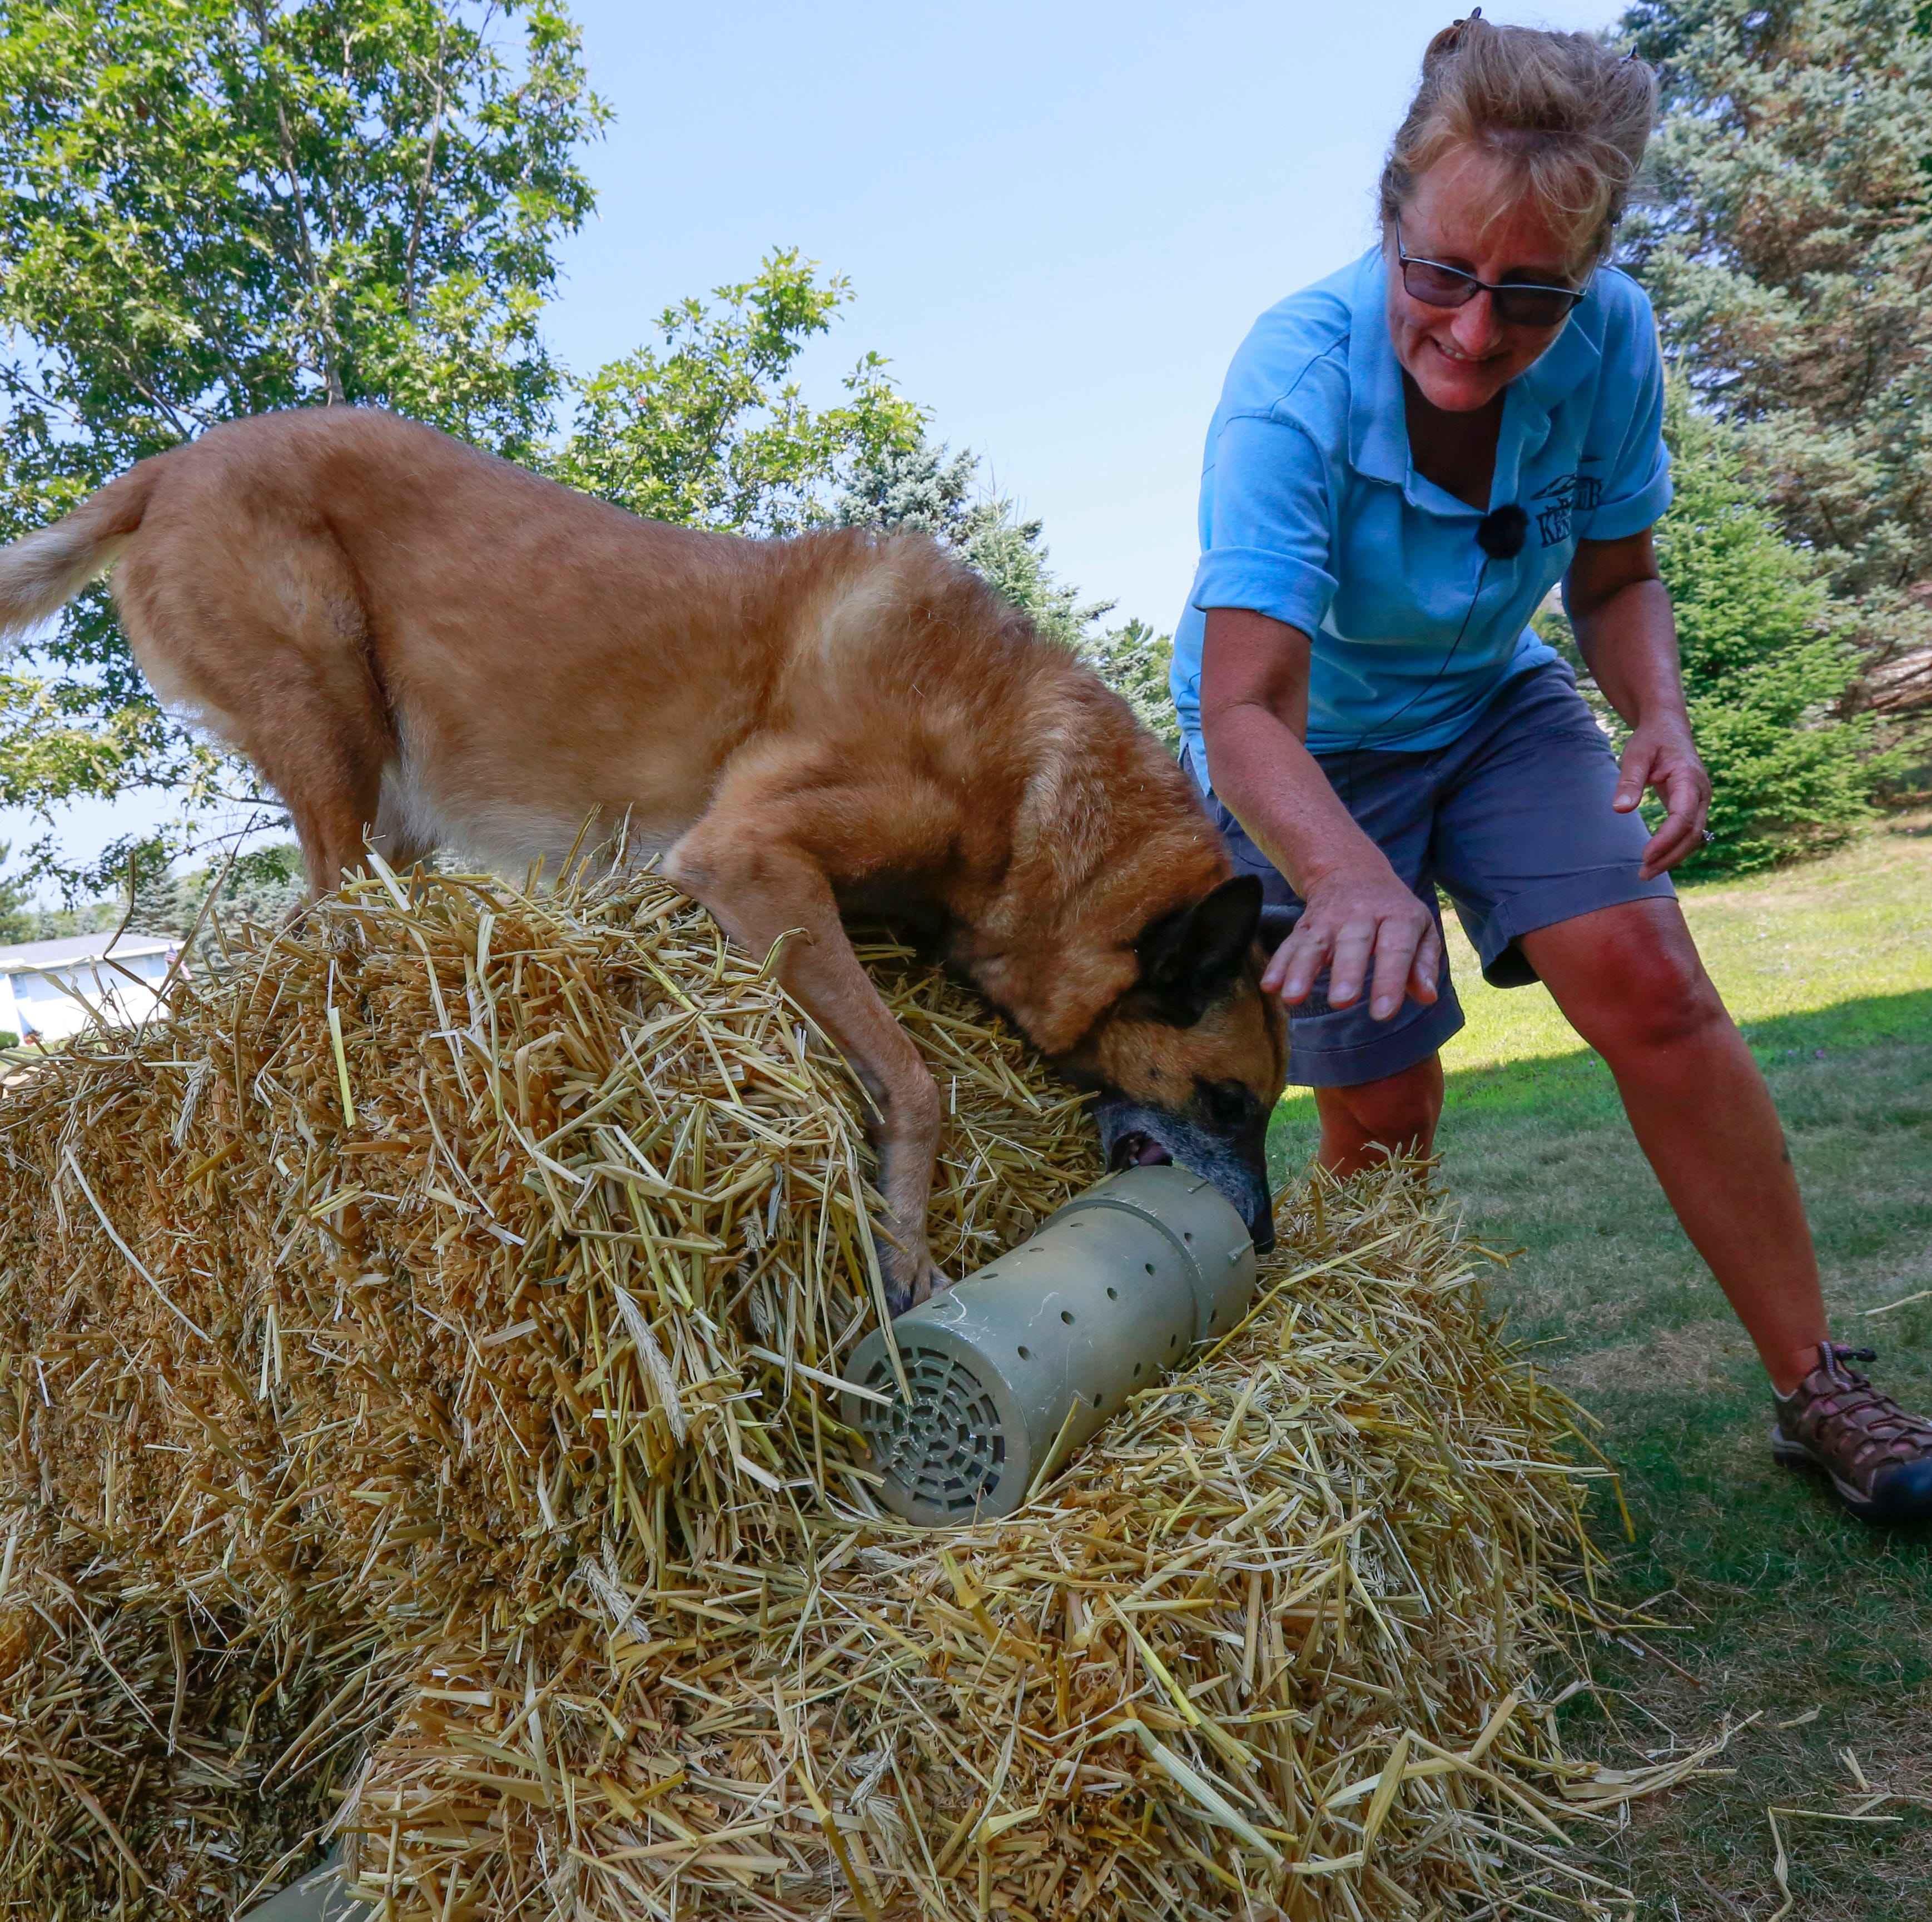 These dogs compete to sniff out rats. It's called barn hunting, and your pup can try, too.